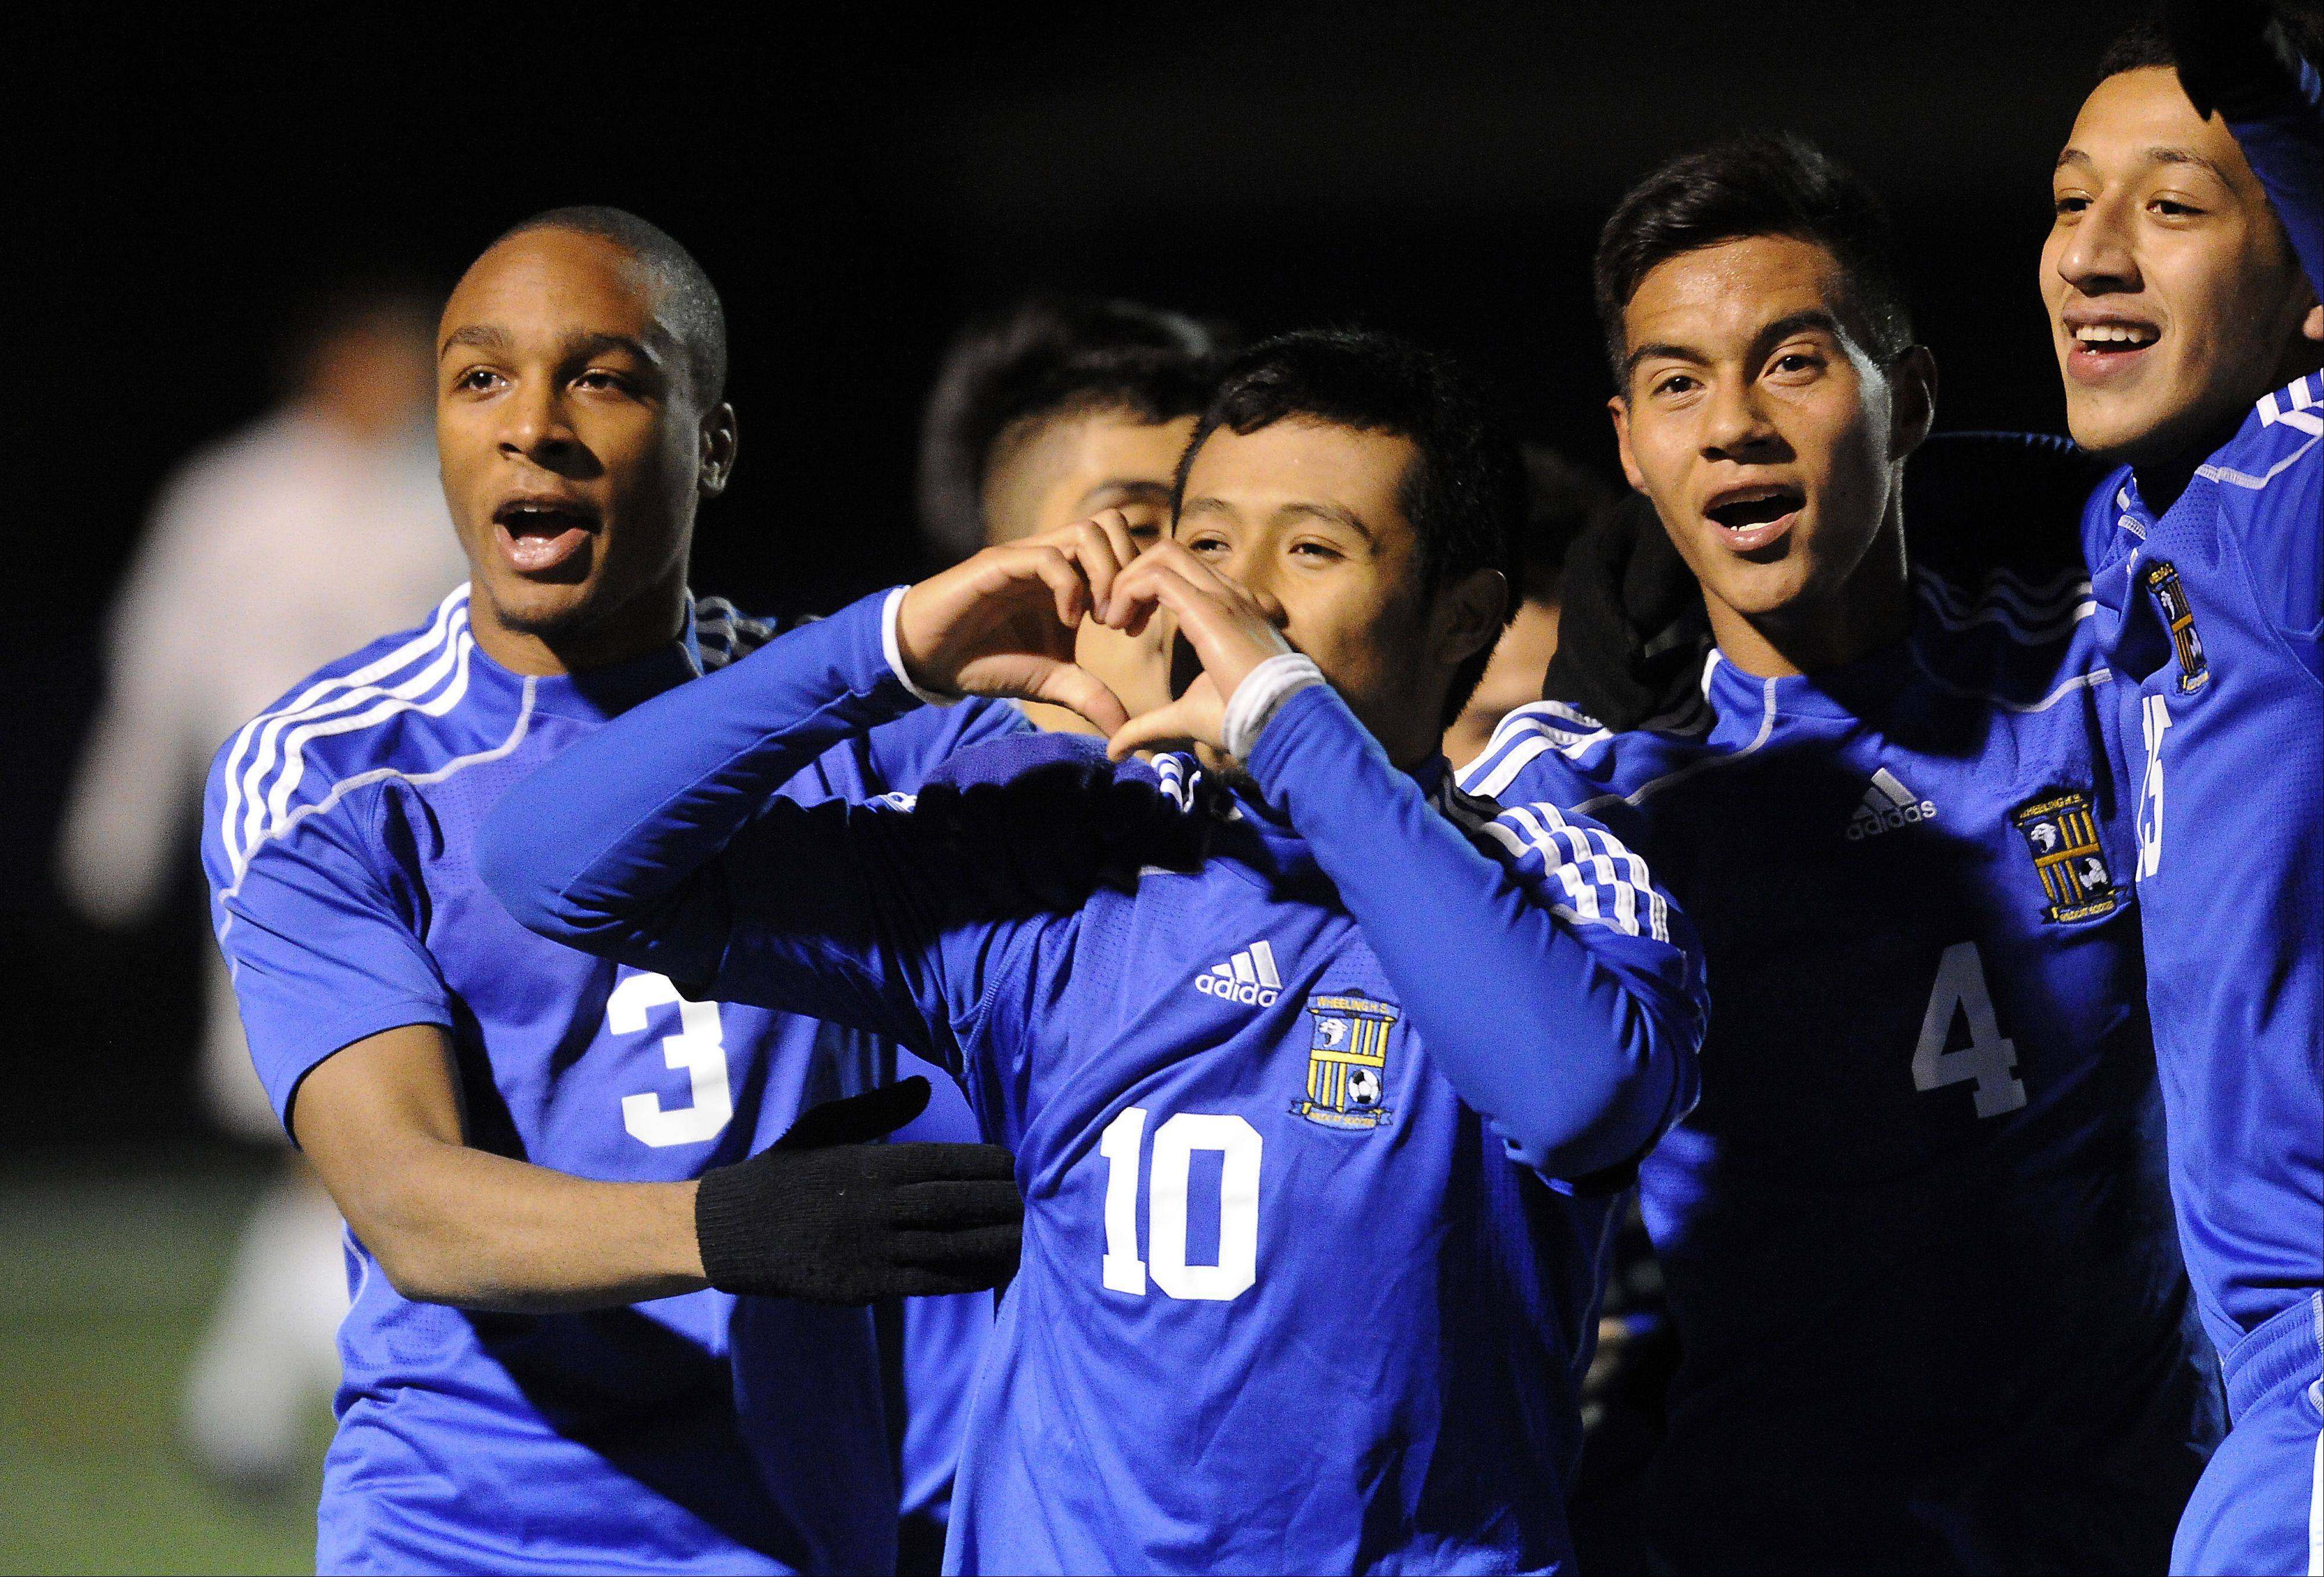 Wheeling's Ivan Manicilla shows some love for the Wildcats' fans after his goal in the second period of the Class 3A boys soccer state semifinals at Hoffman Estates on Friday.